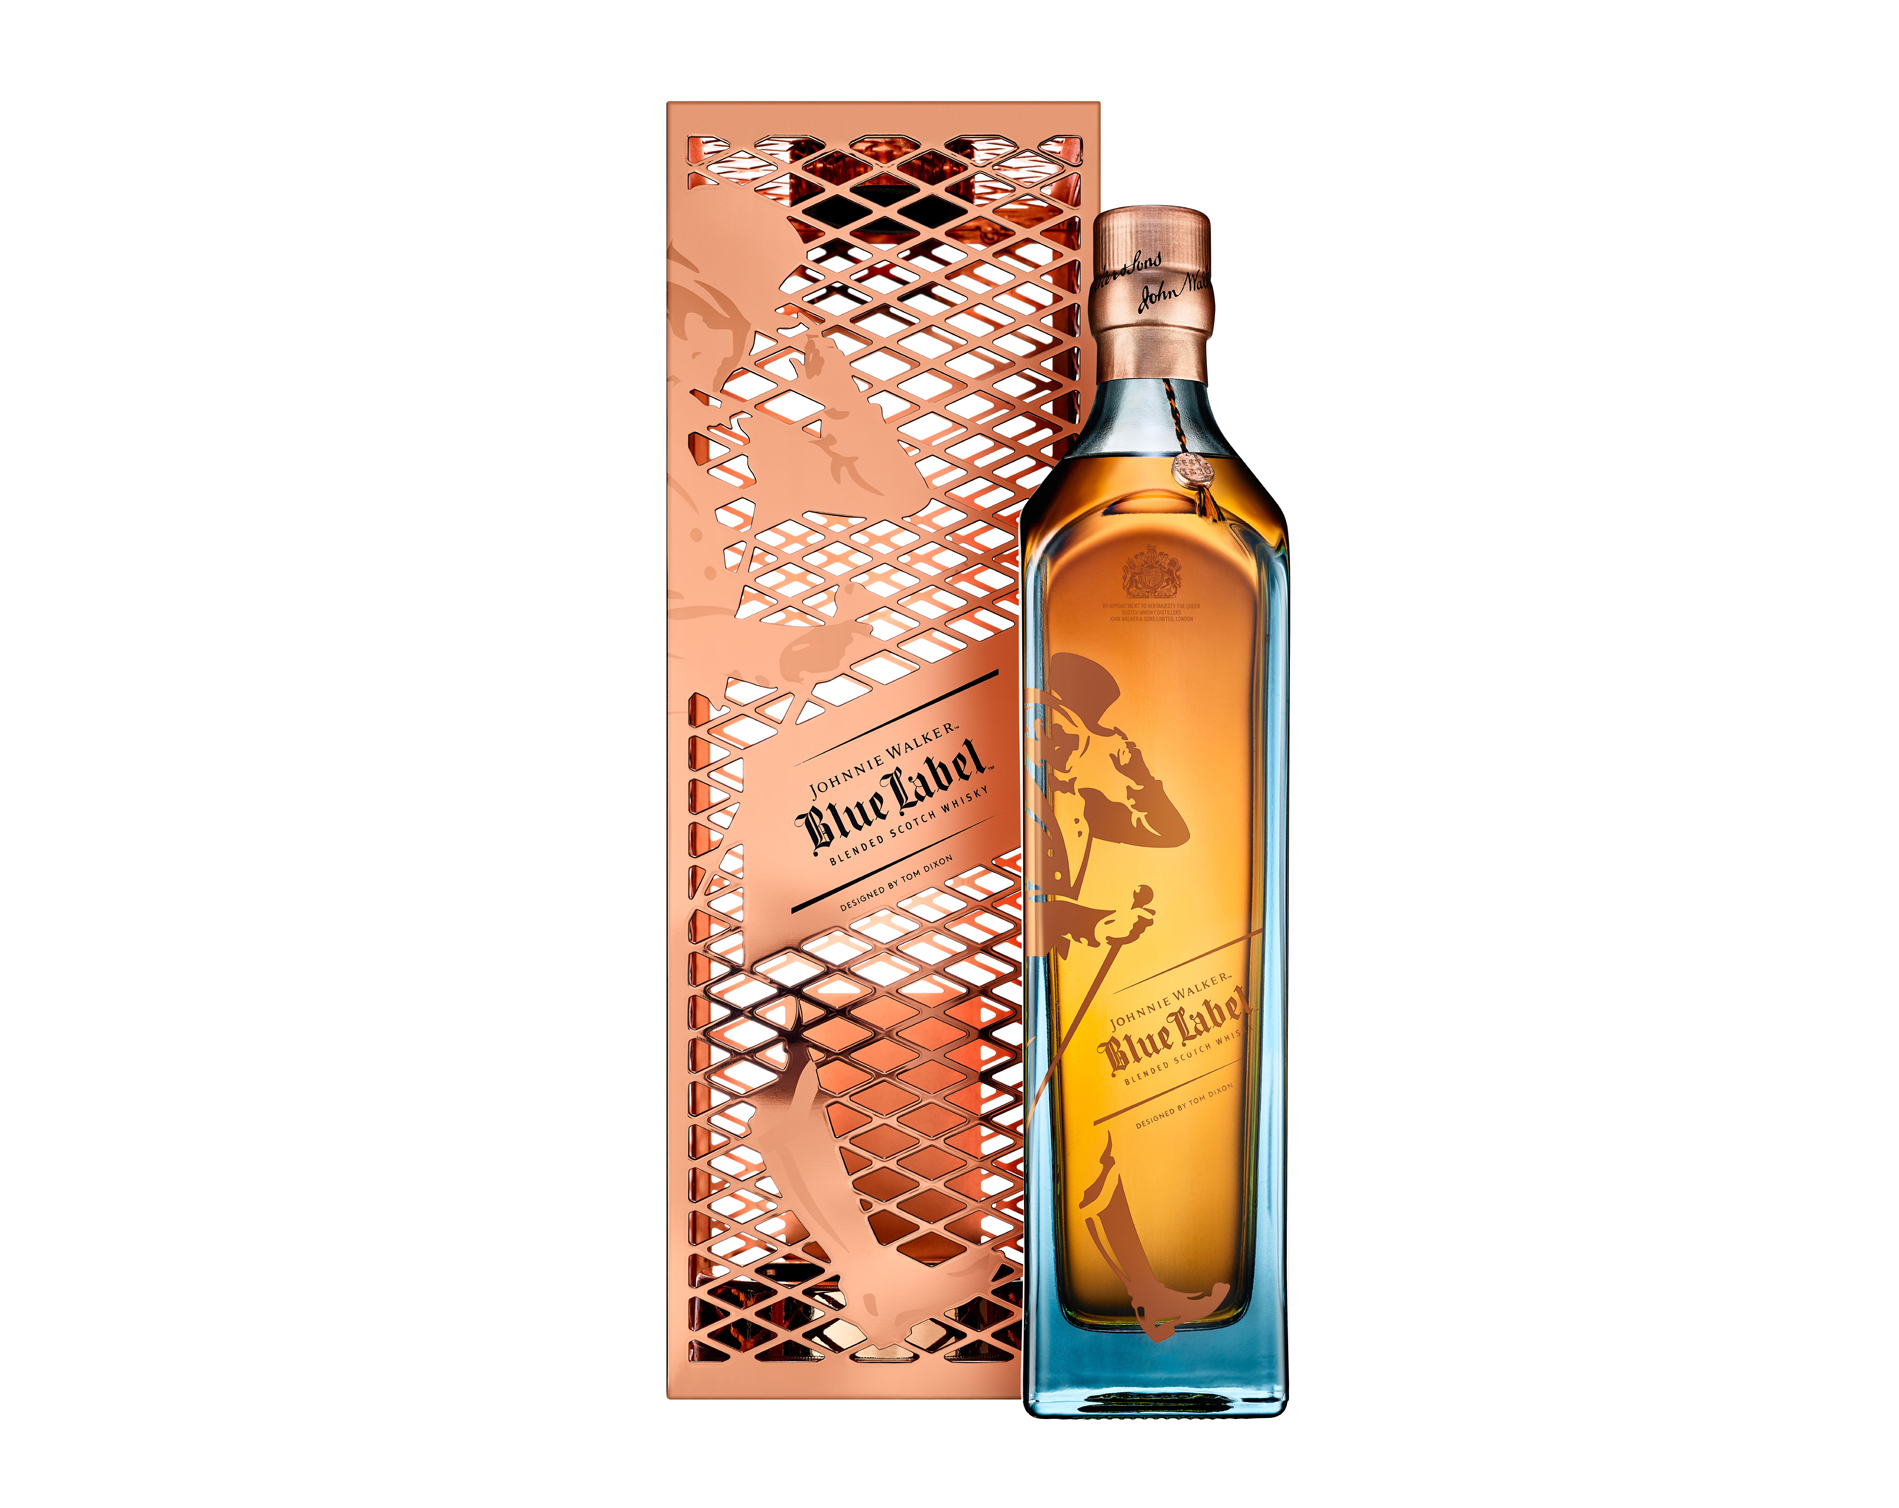 Johnnie Walker Blue Label Capsule Series By Tom Dixon (Johnnie Walker/PA)